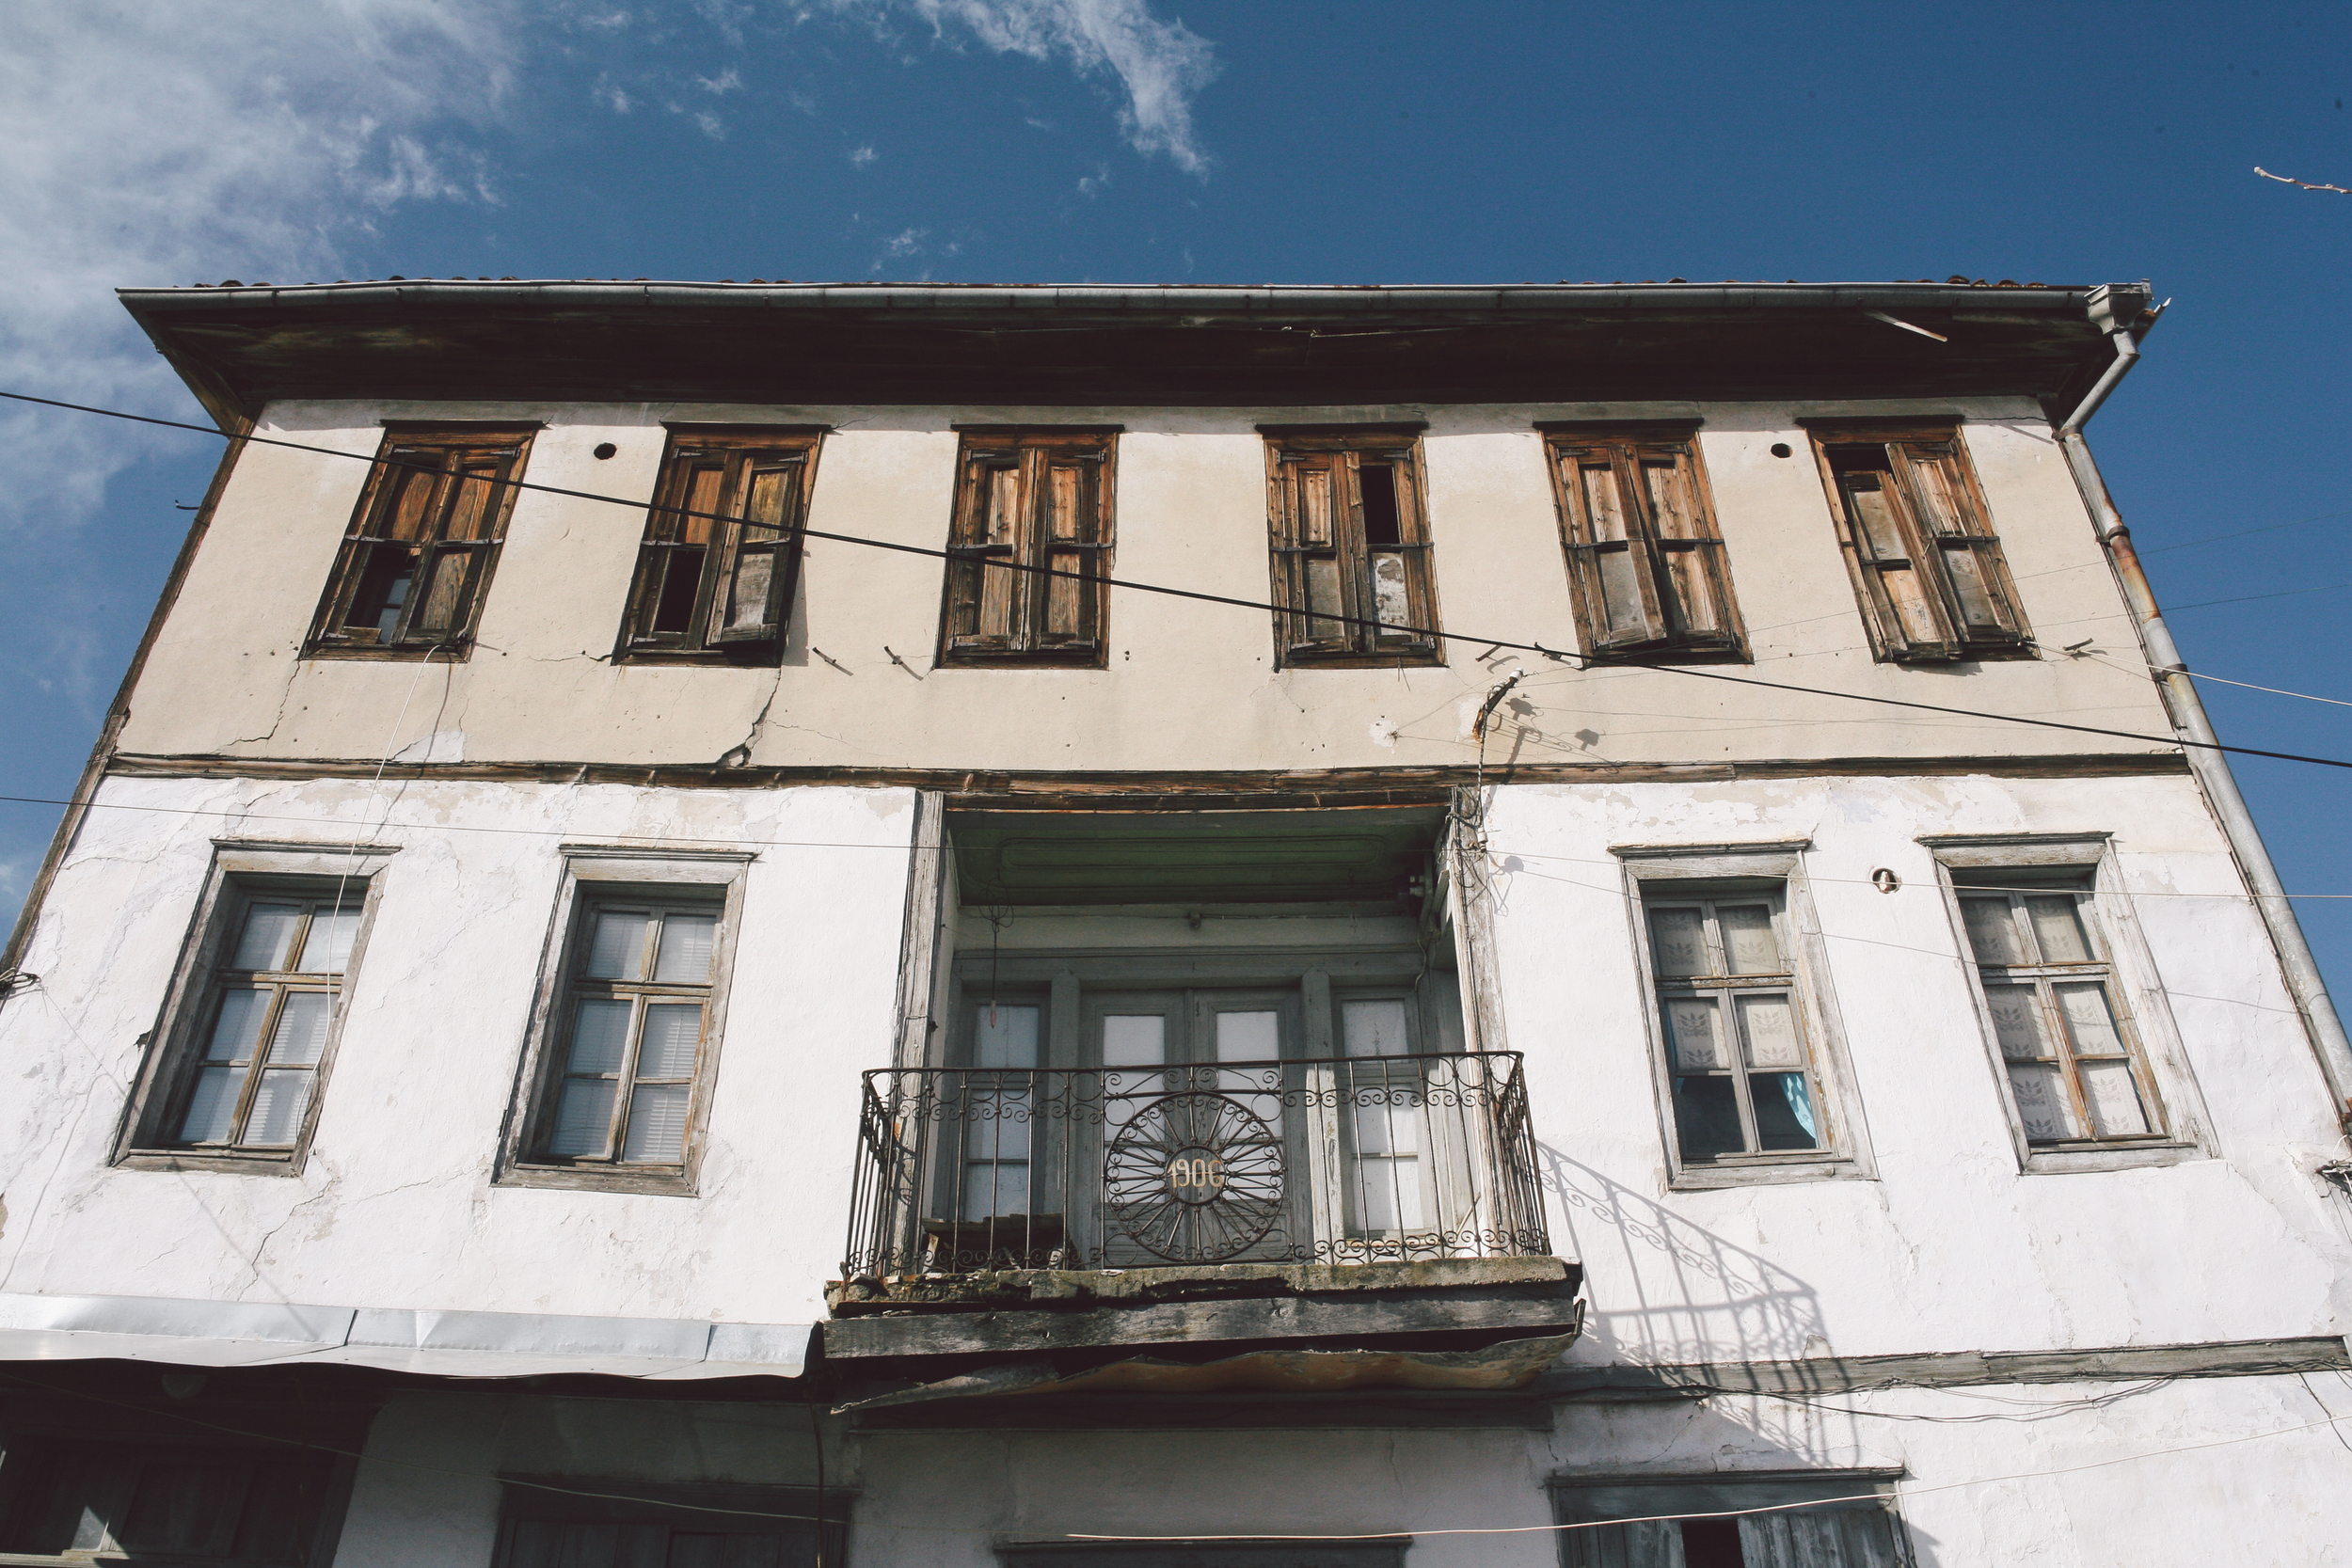 A neoclassical mansion in Ortakio with the year that it was constructed displayed on the balcony.